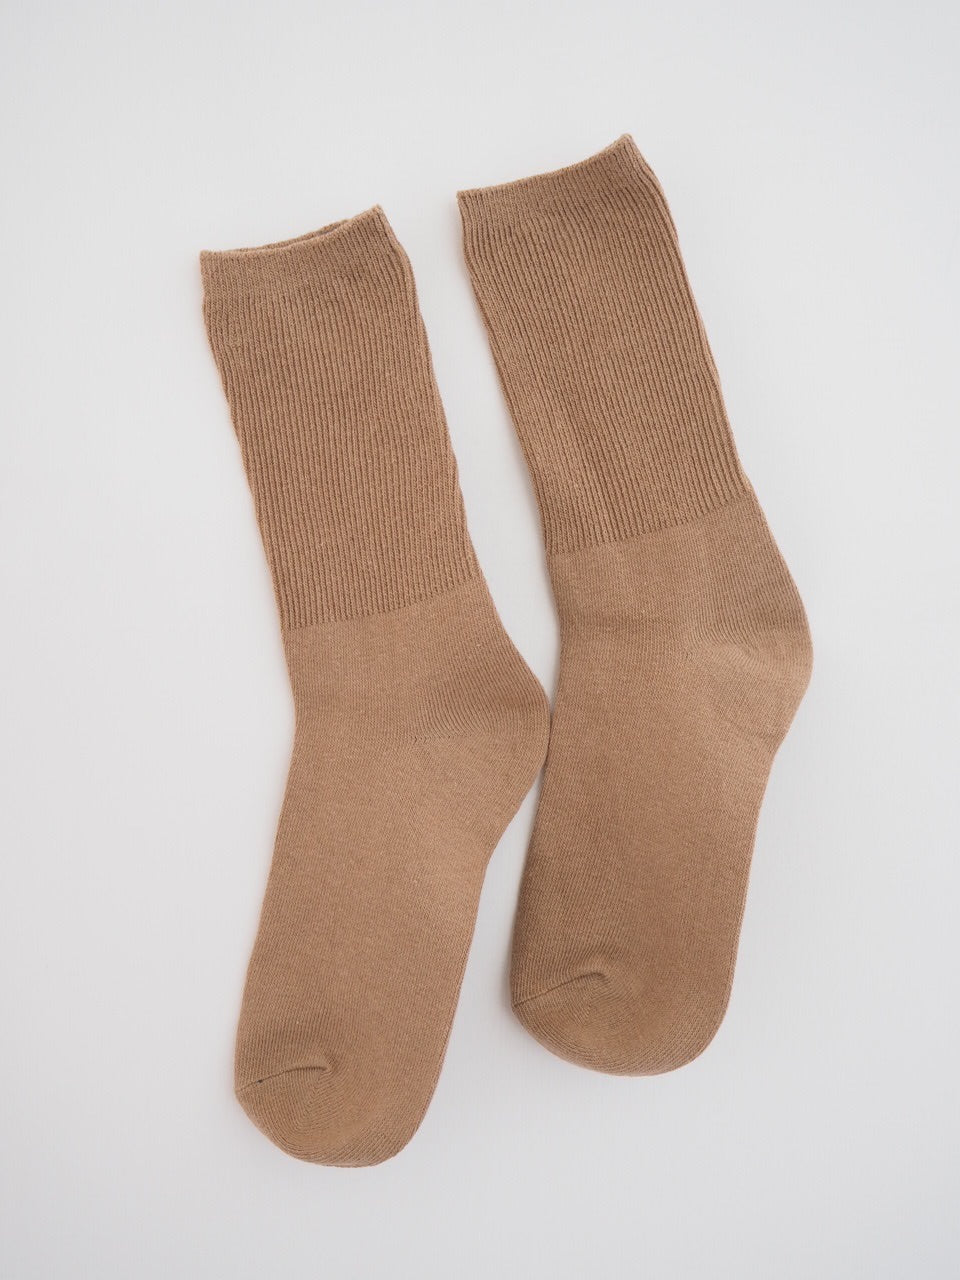 S O K K E N  Ribbed socks - Maple